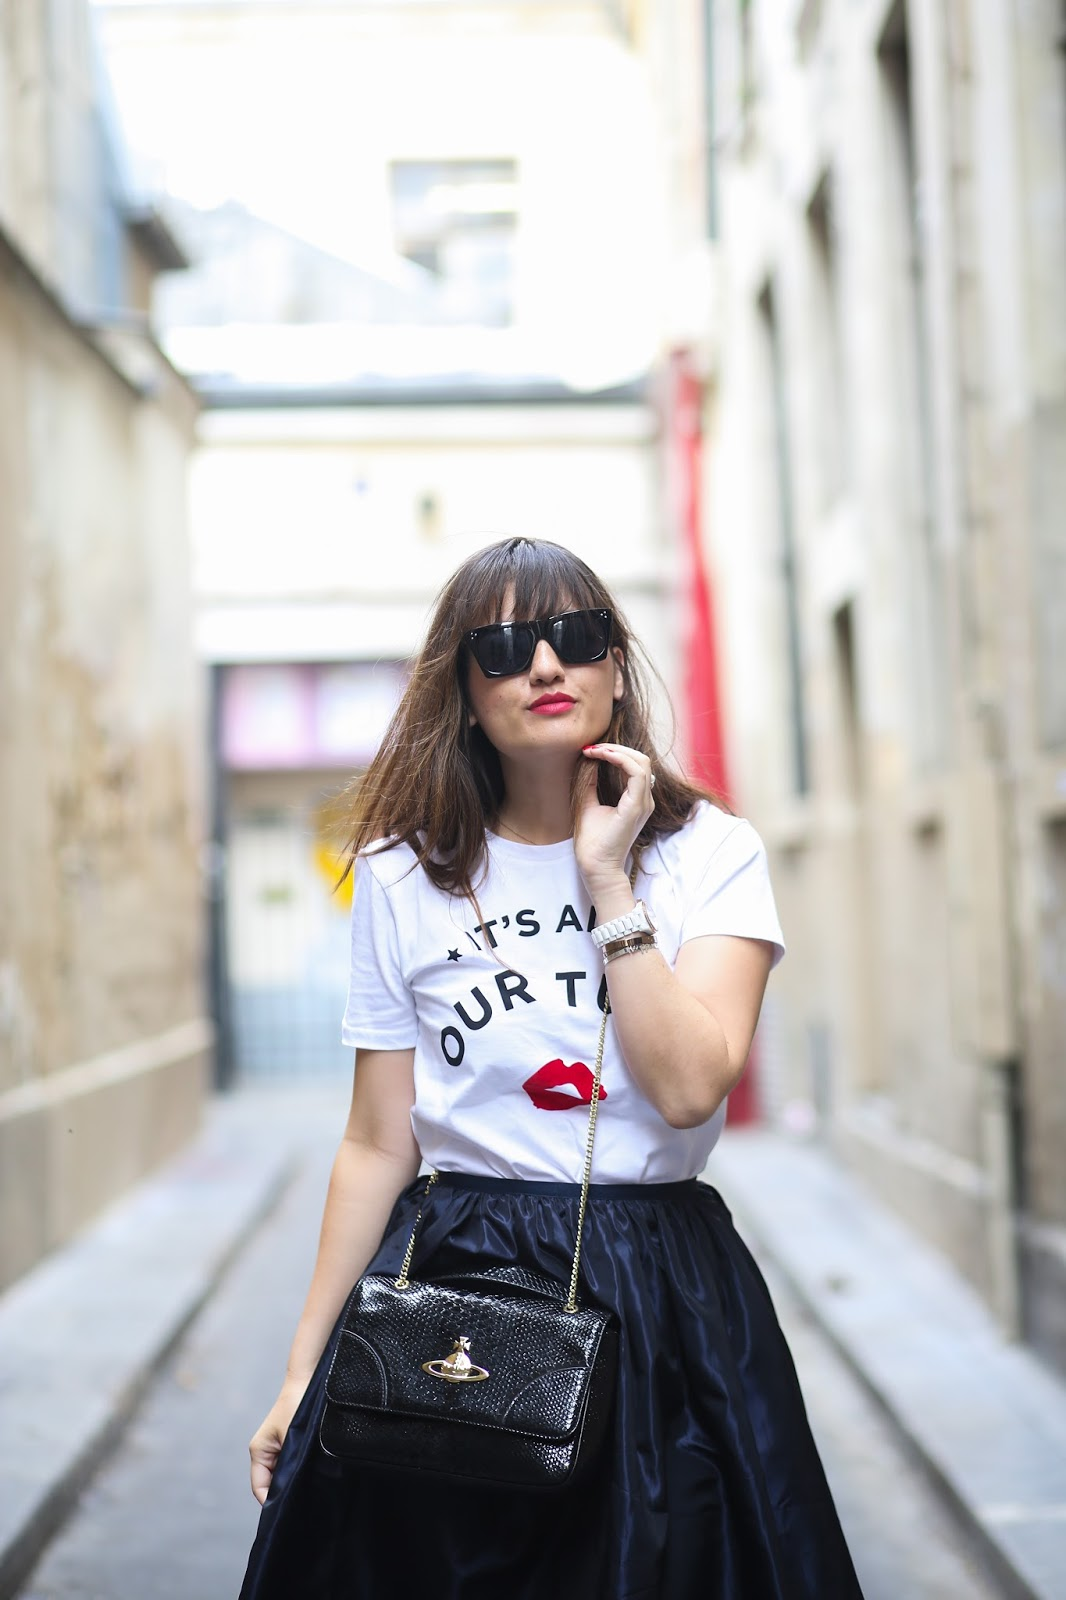 Barons Papillom, Streetstyle, Blog Mode Paris, Chic Style, Sneaker Style